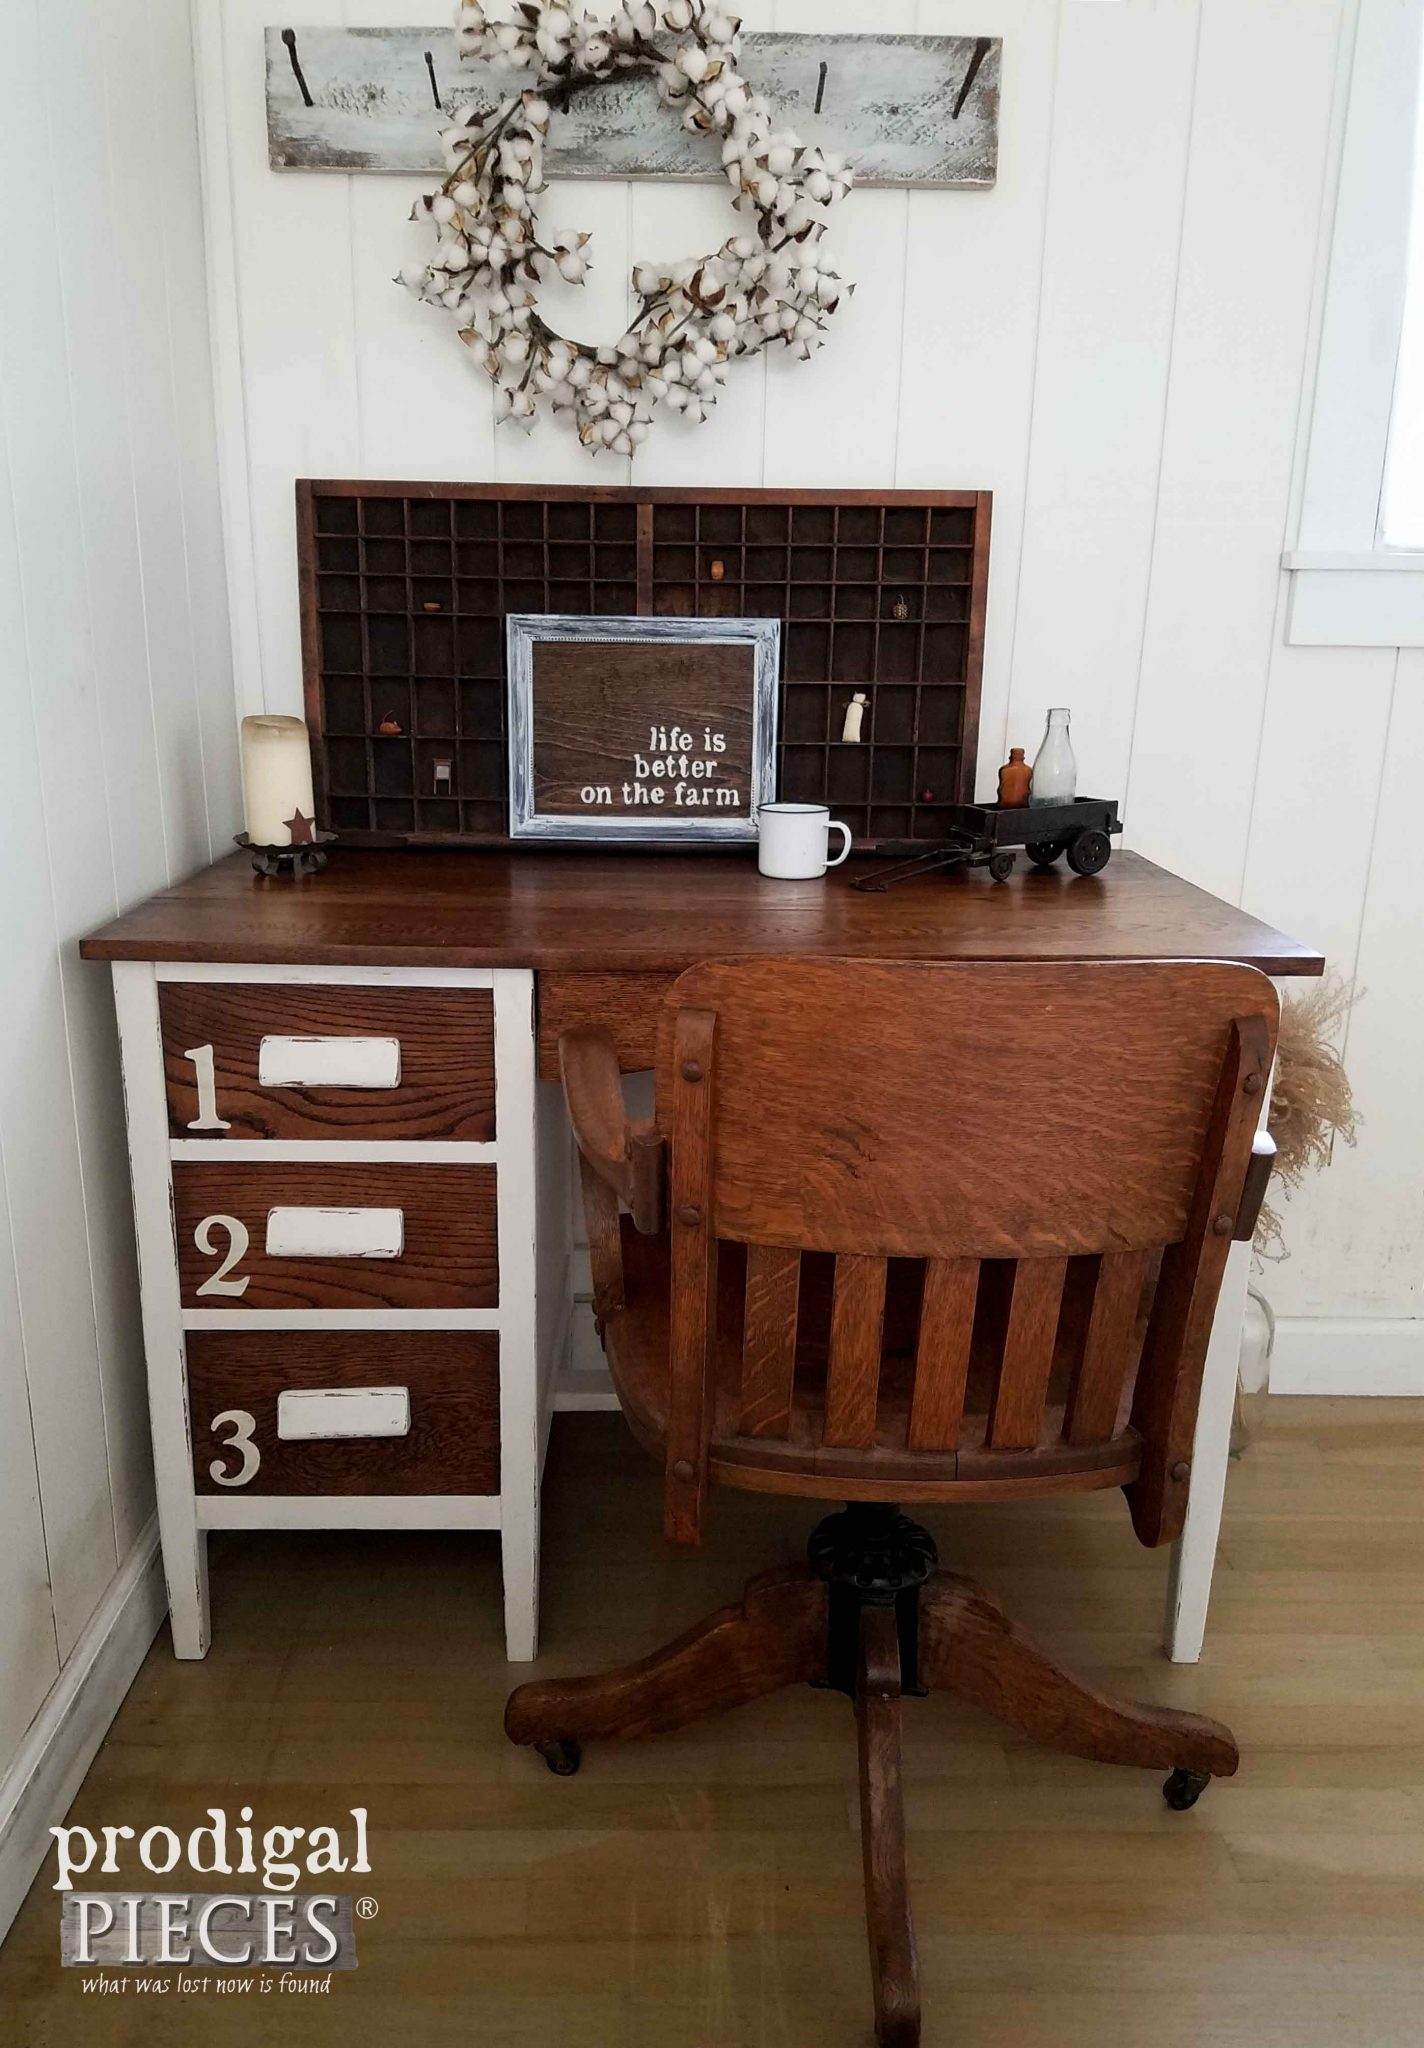 Industrial Oak Desk by Prodigal Pieces | prodigalpieces.com